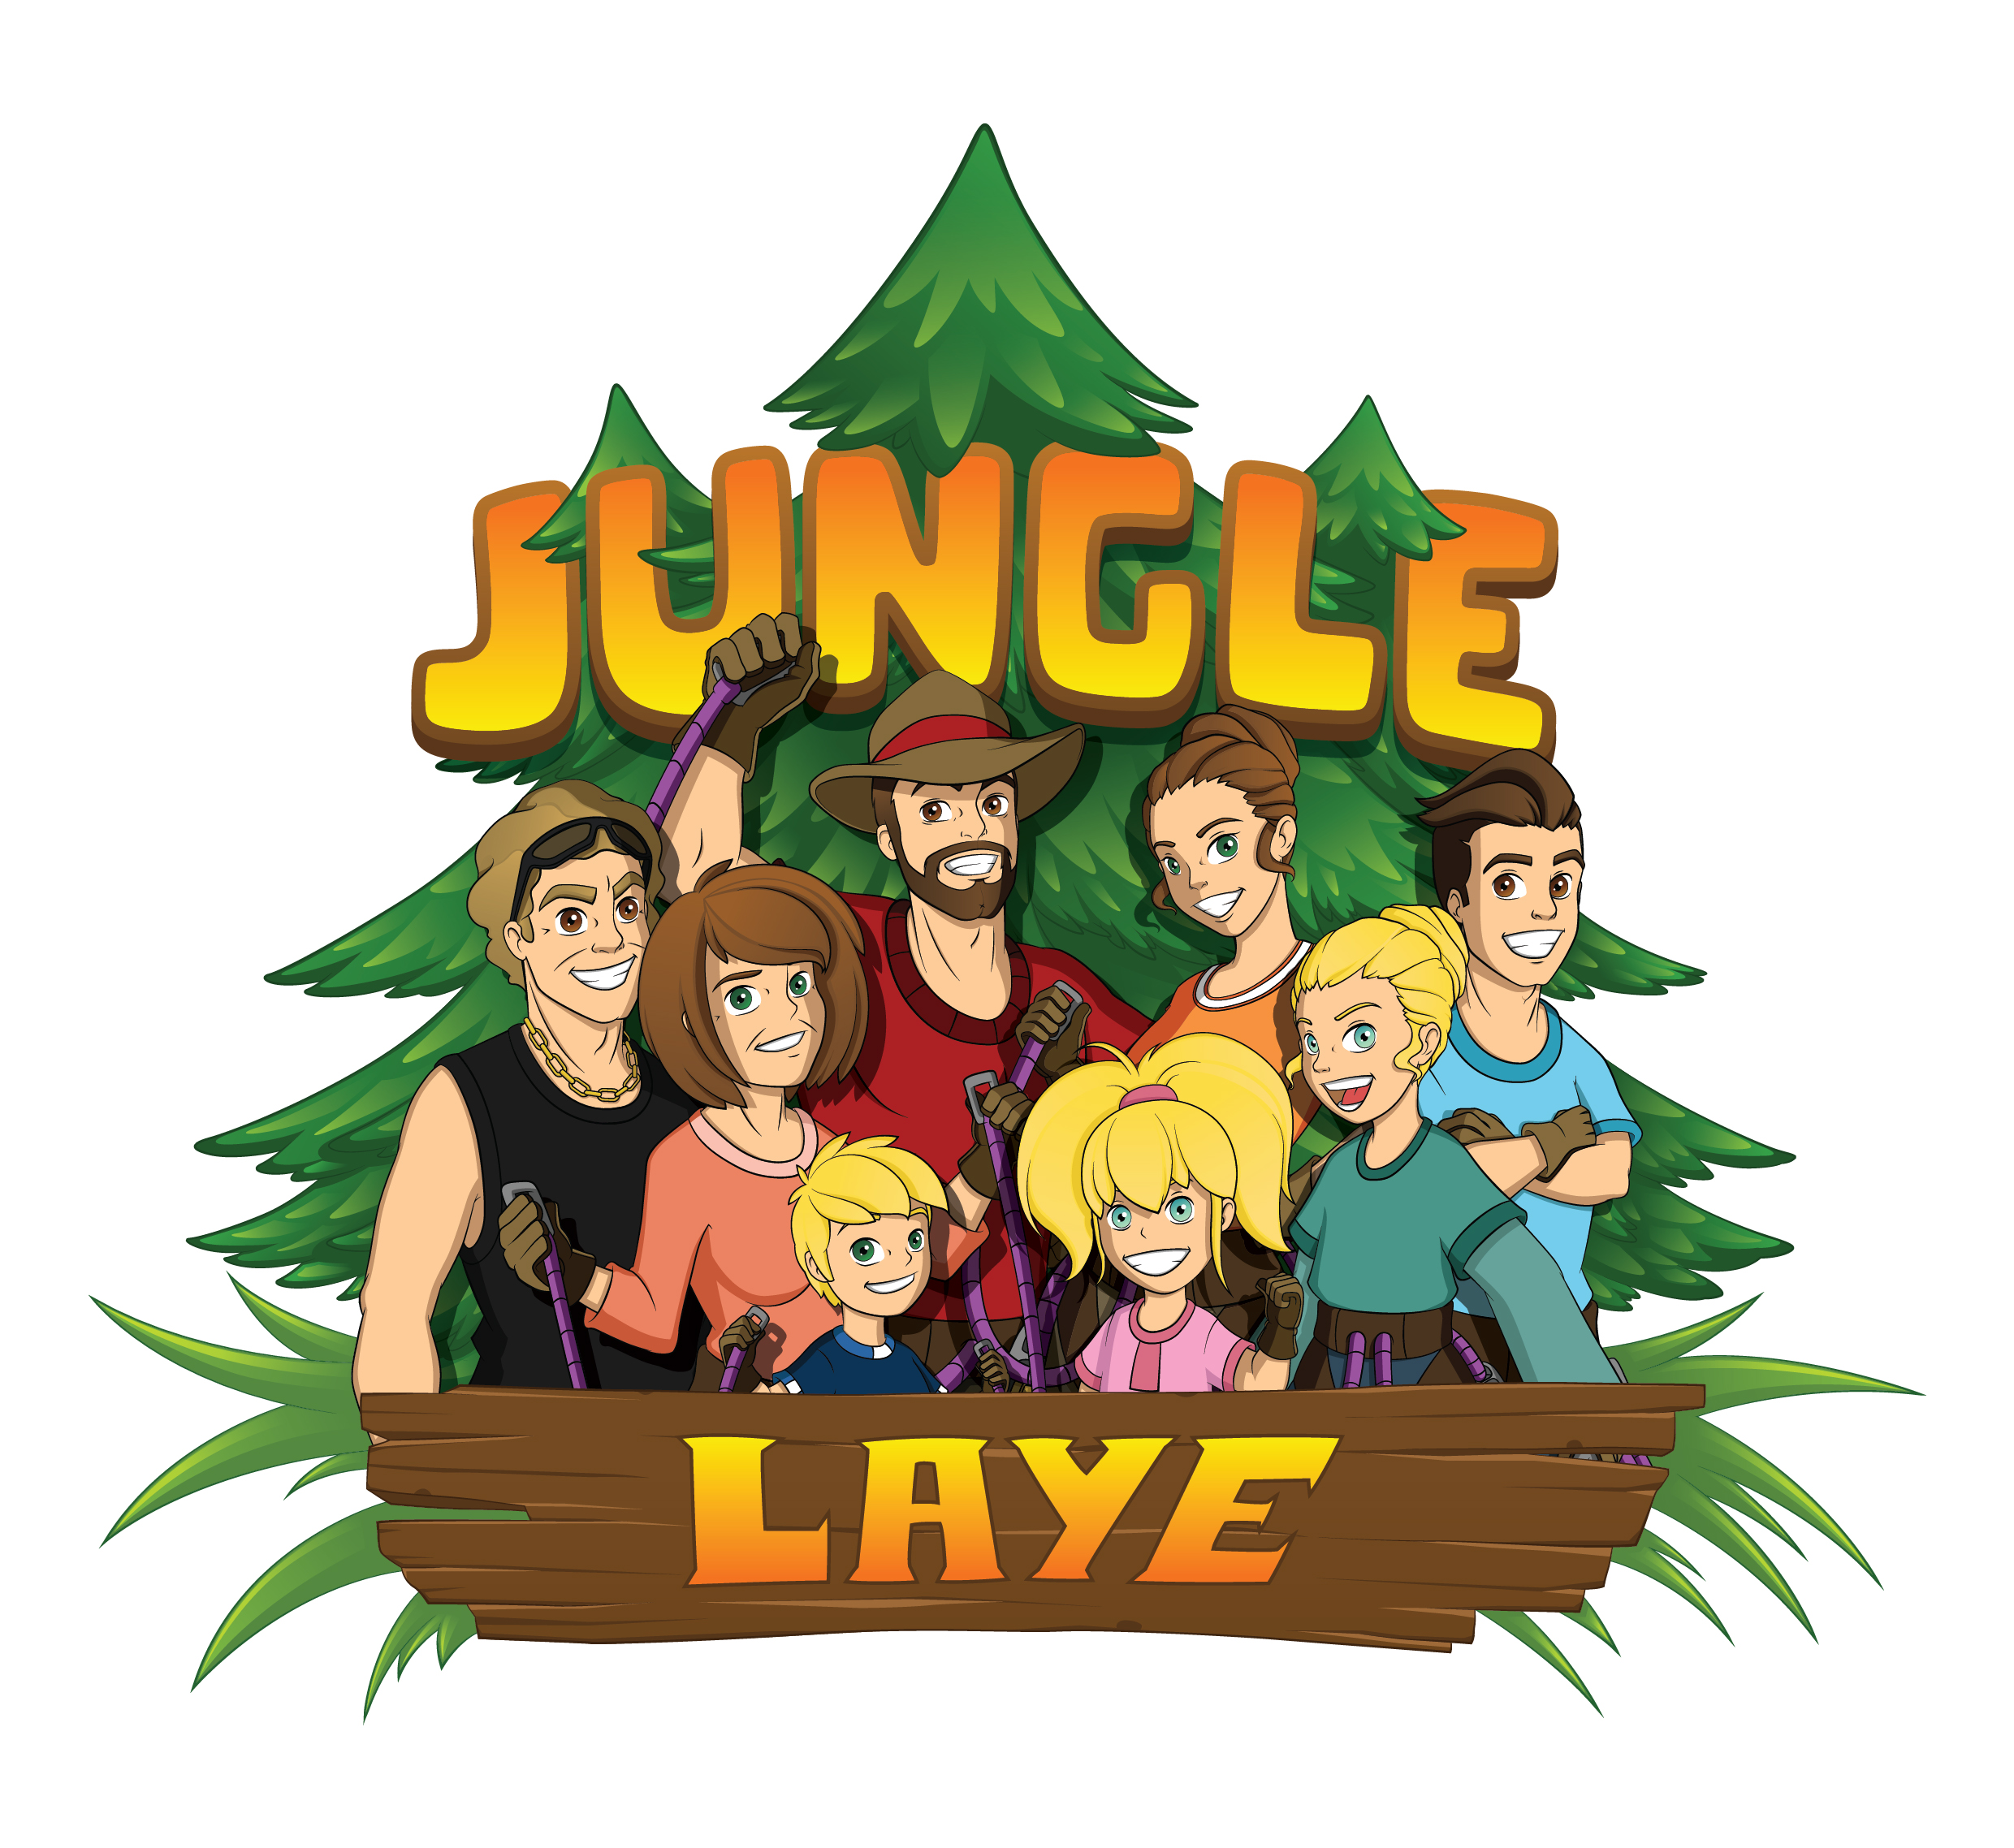 Jungle Laye